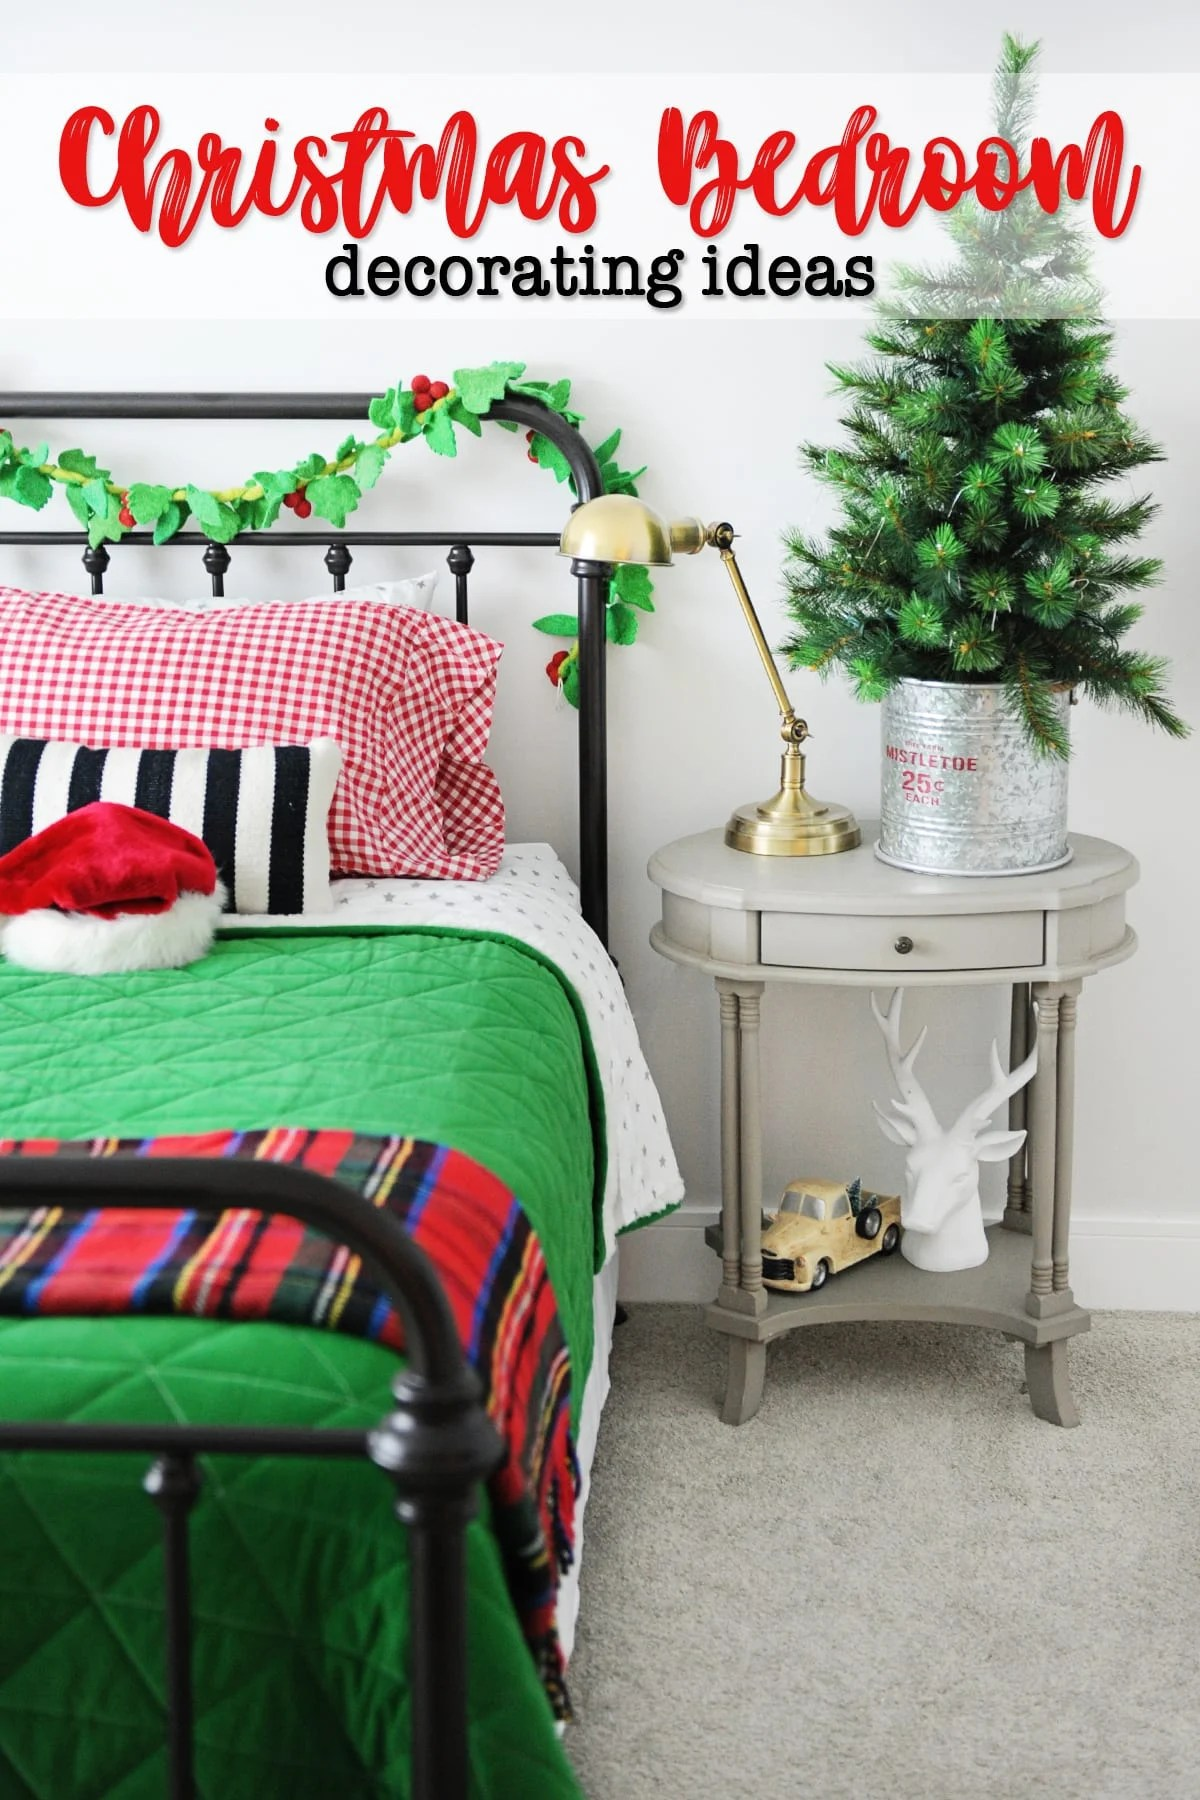 Cute christmas bedroom decorating ideas